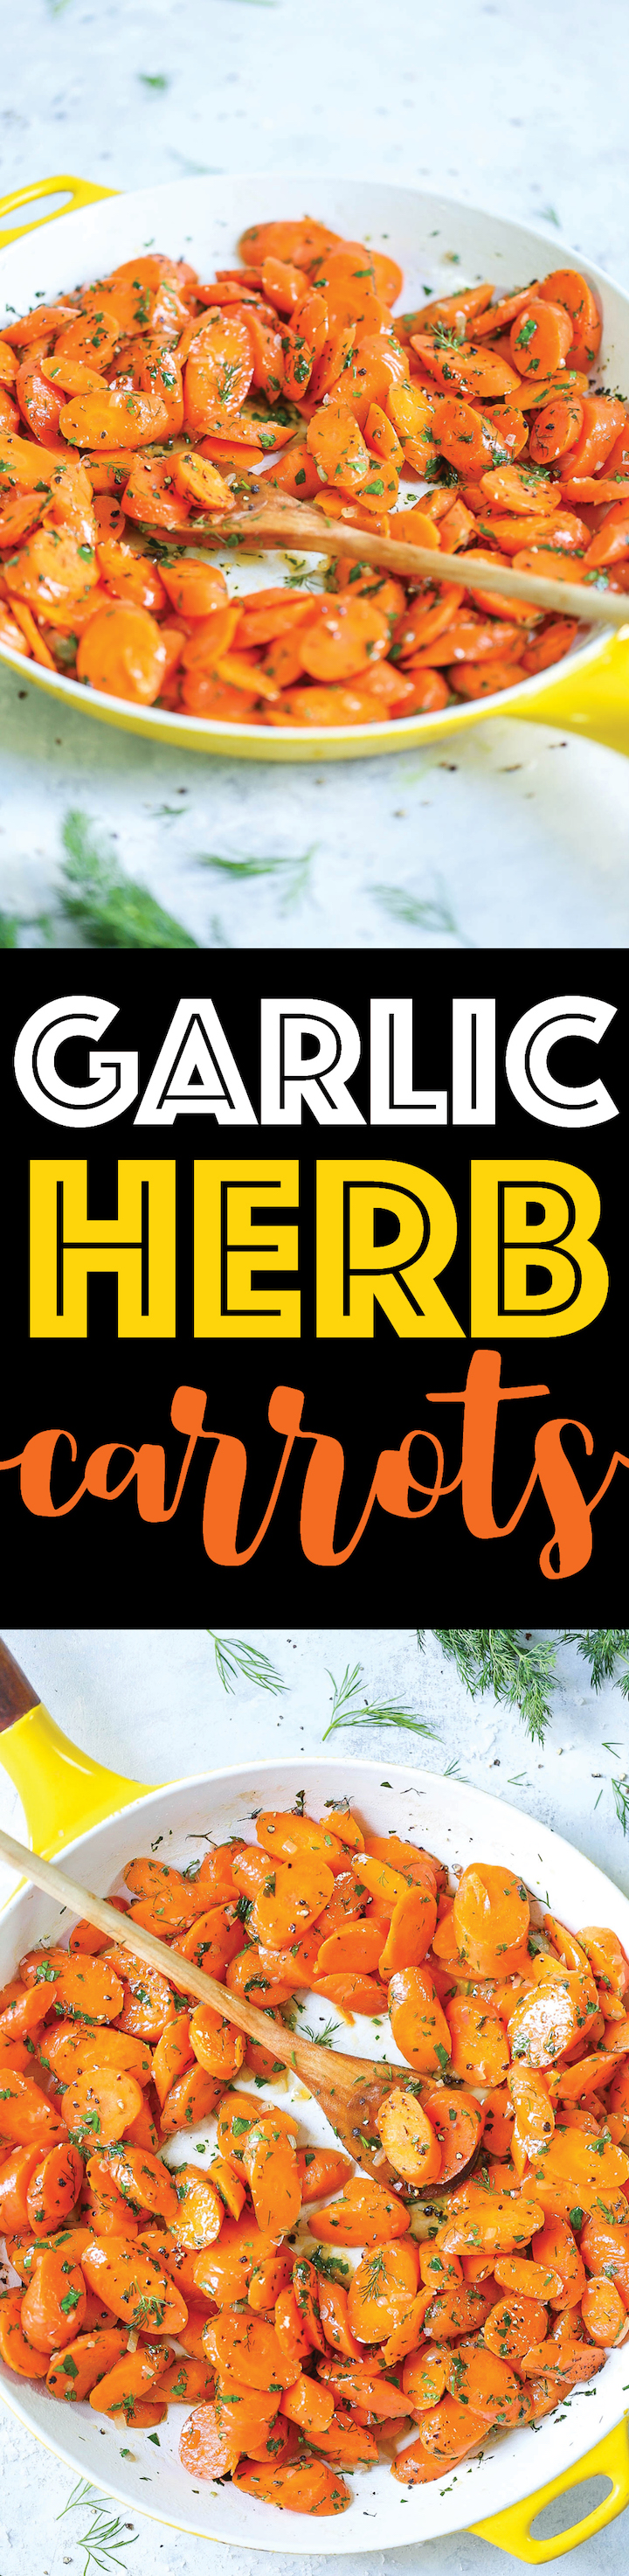 Garlic Herb Carrots - This quick and easy side dish comes out perfectly every single time. The carrots come out amazingly garlicky, buttery and slightly sweet, tossed with fresh dill, parsley and tarragon. It is so simple yet it is elegant enough for any occasion!